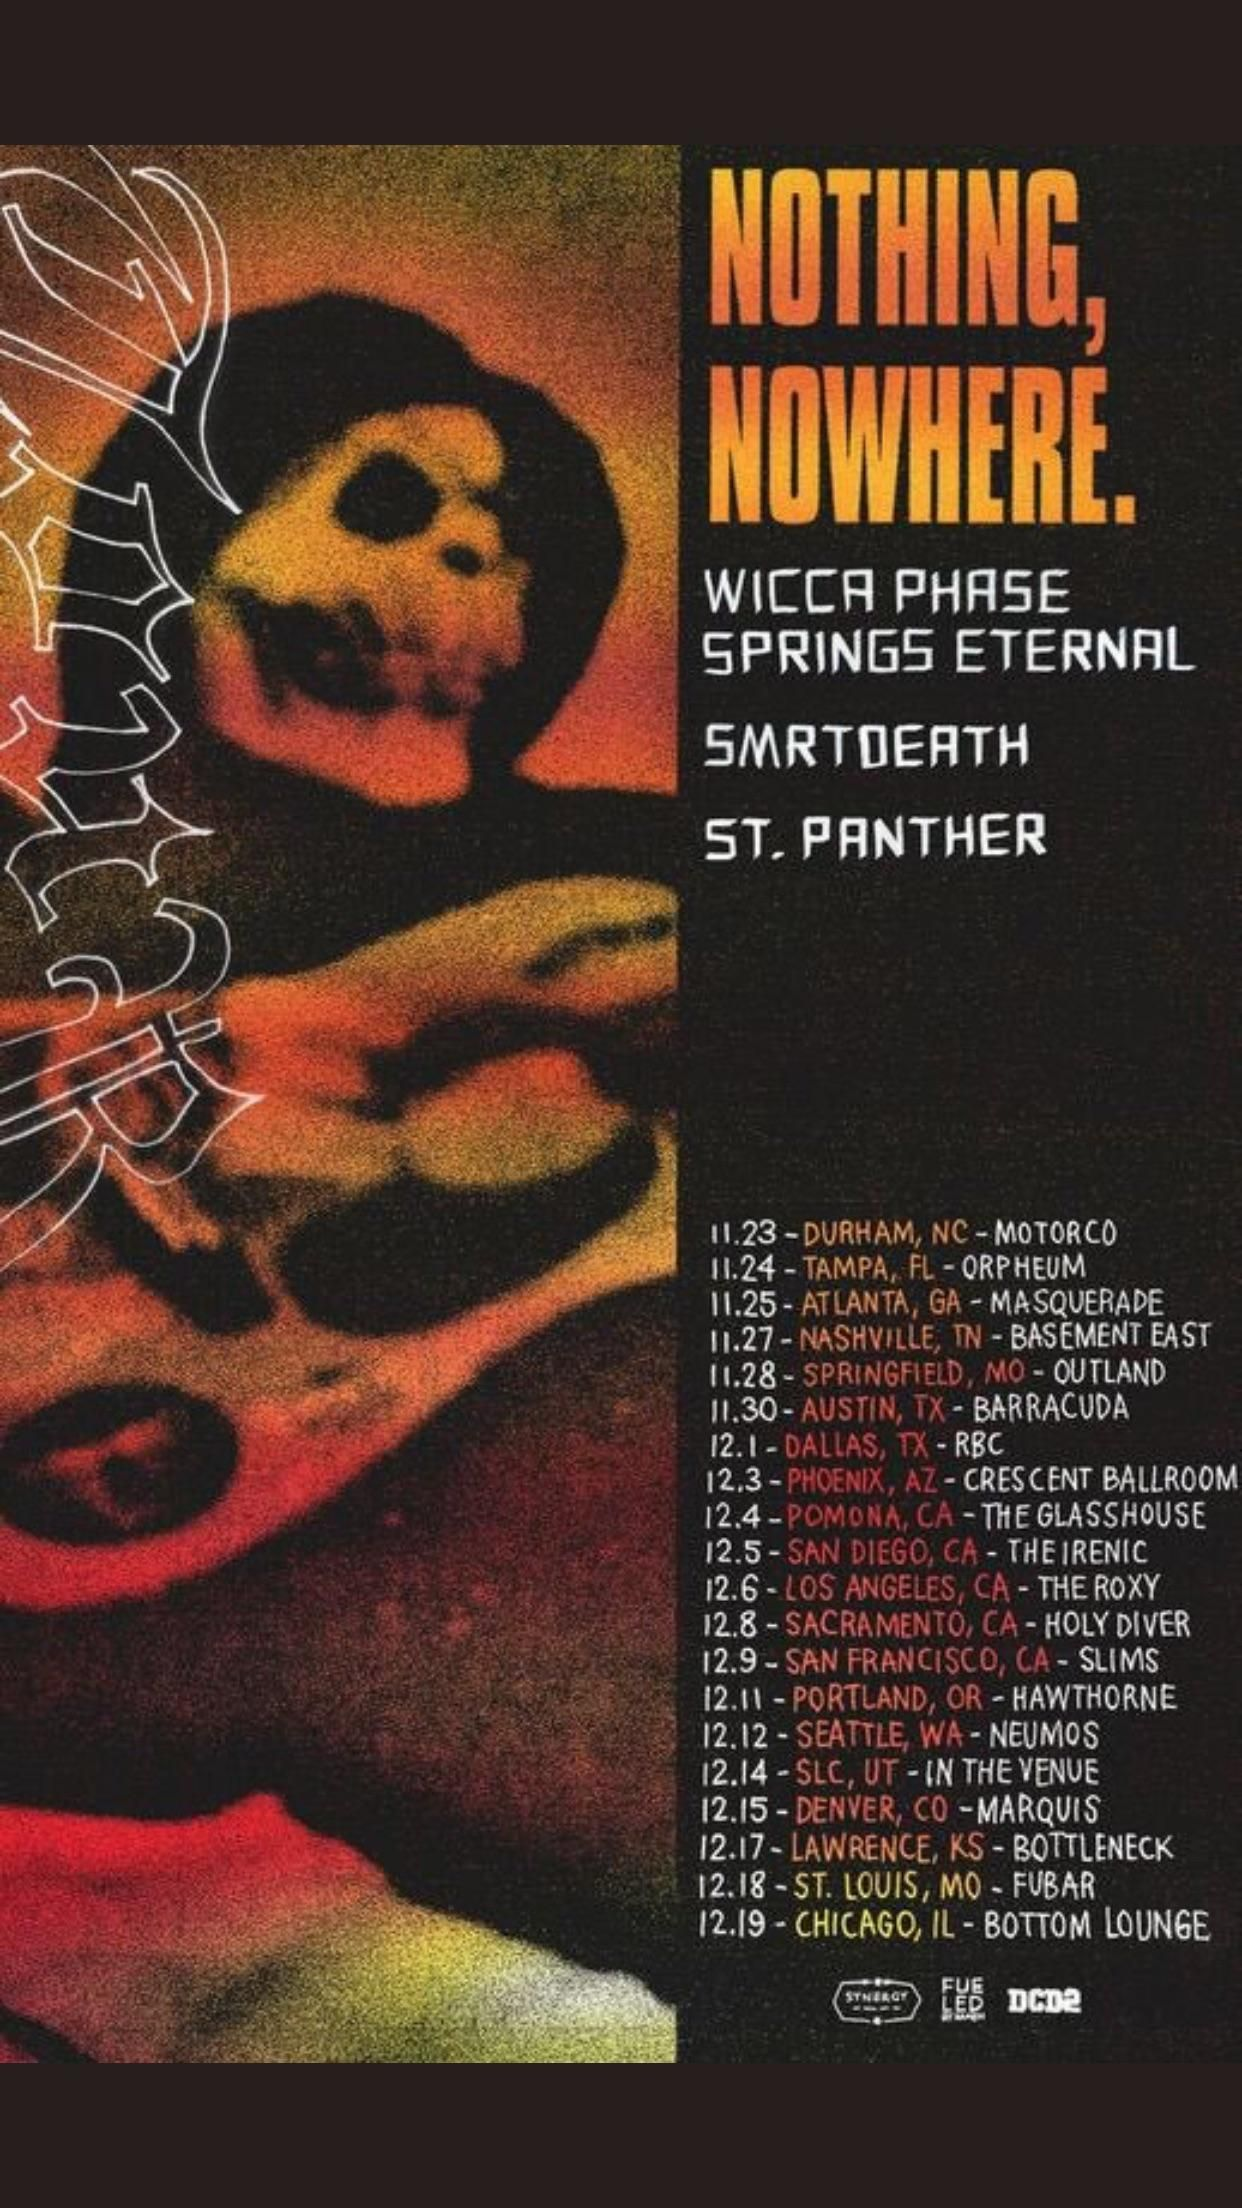 Nothing Nowhere Wicca Phase Smrtdeath Upcoming Us Wicca Springfield Mo Holy Diver